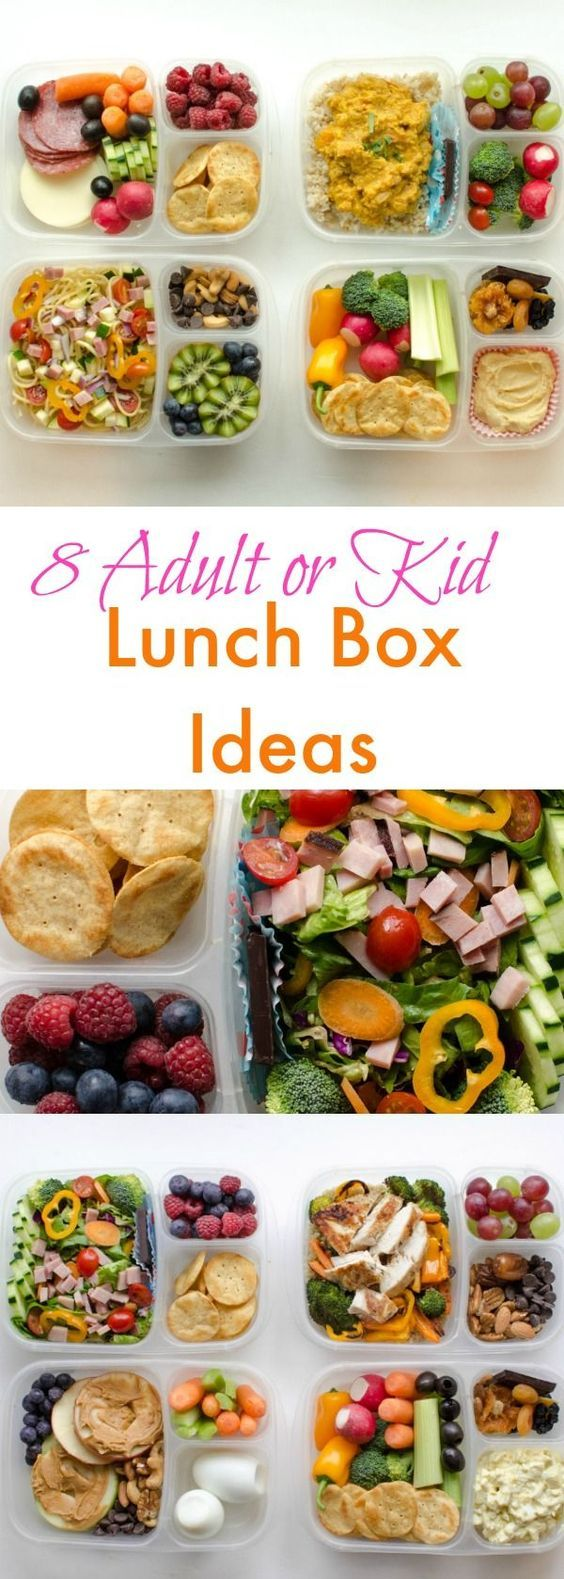 34 best lunch box ideas images on pinterest clean eating recipes